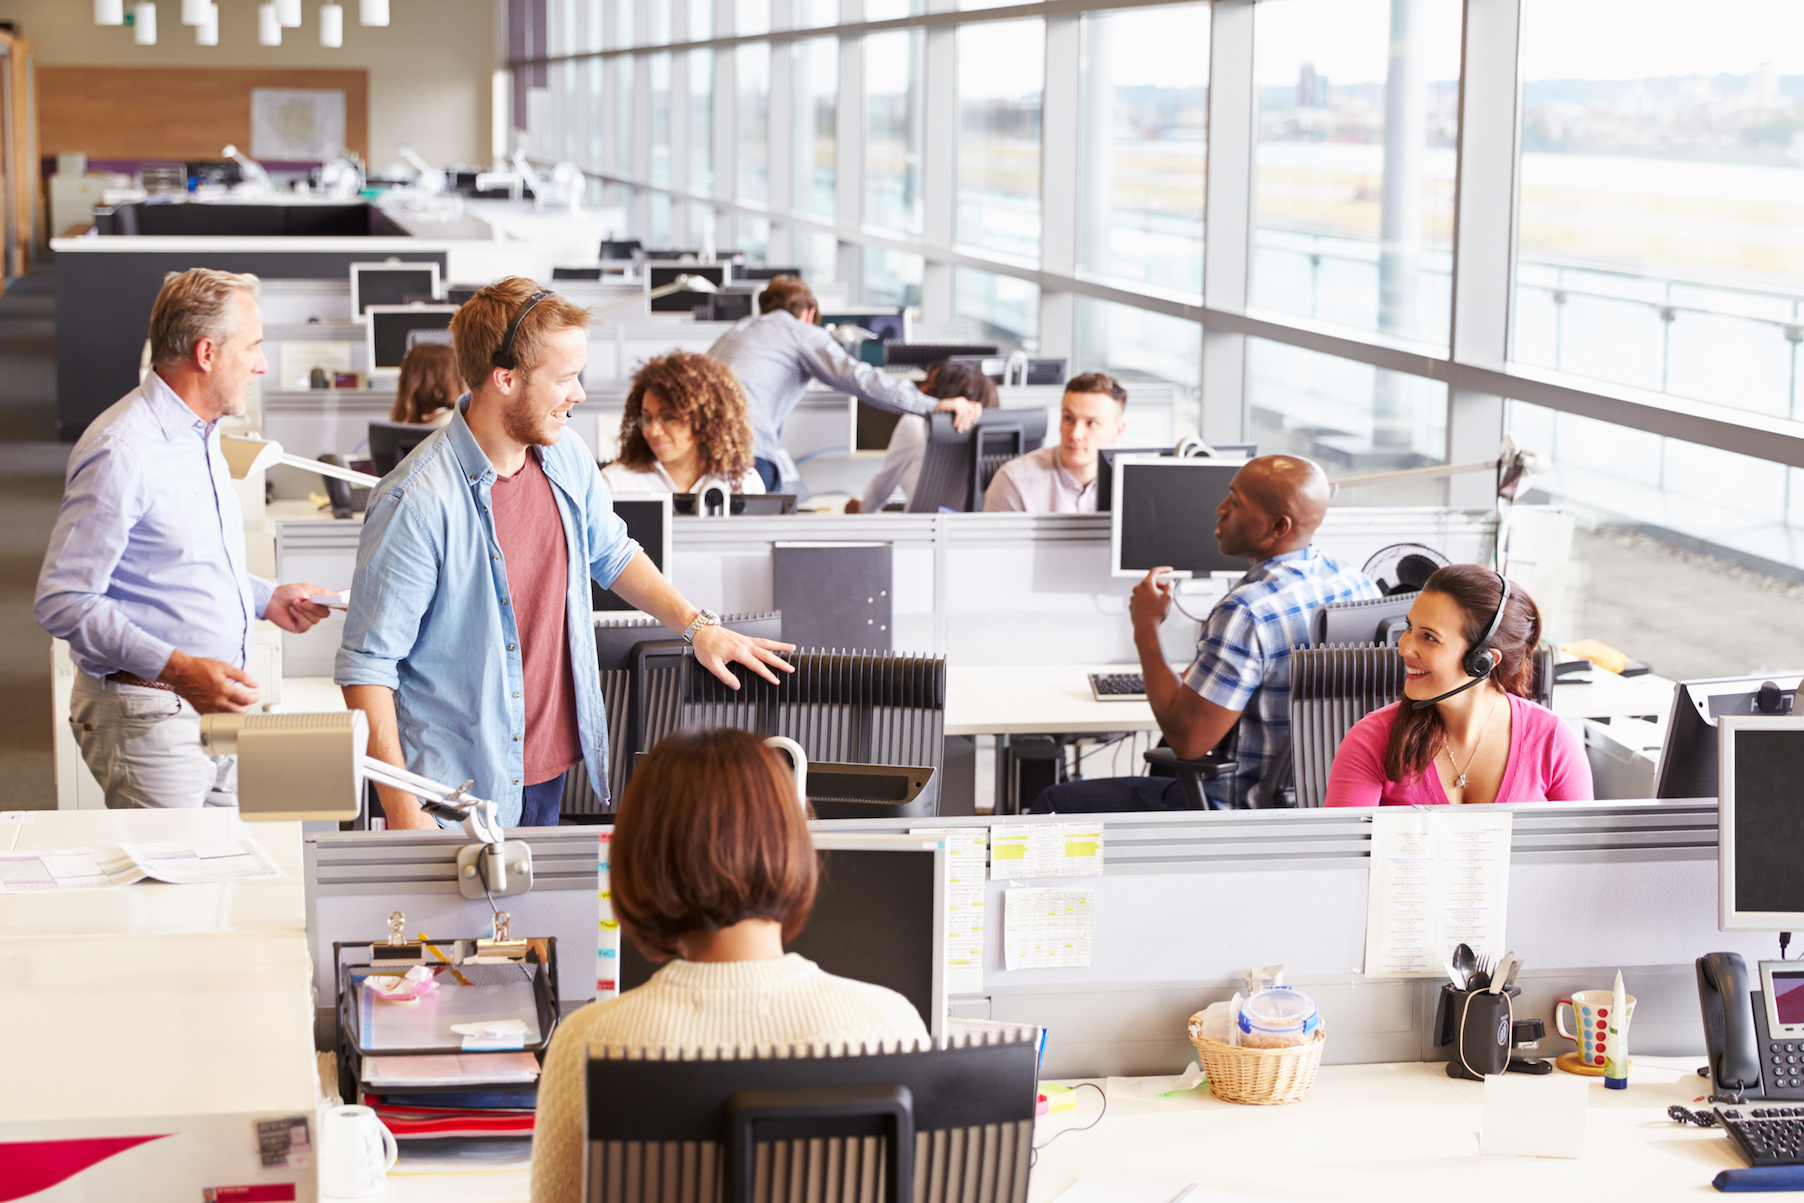 Research has found that open-plan offices can be distracting and create a stressful environment for employees.